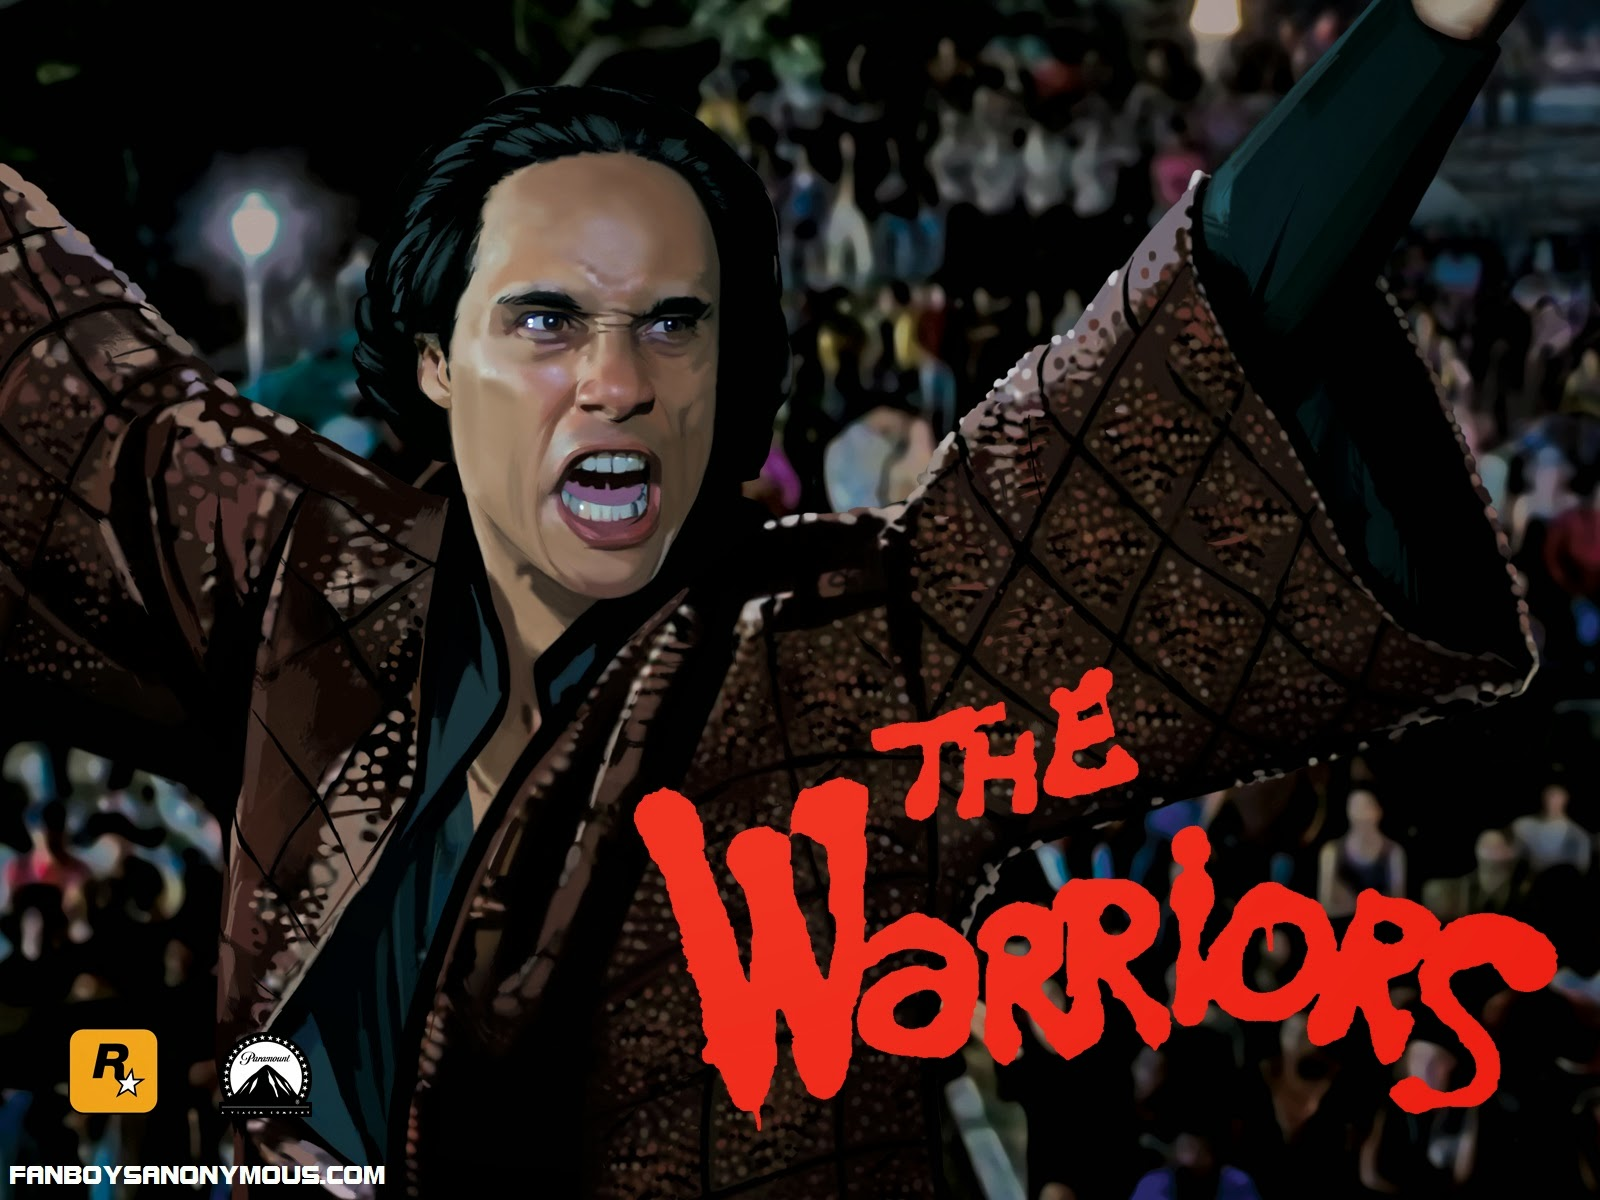 Rockstar concept and cover art for PS2 videogame The Warriors with Roger Hill as Cyrus